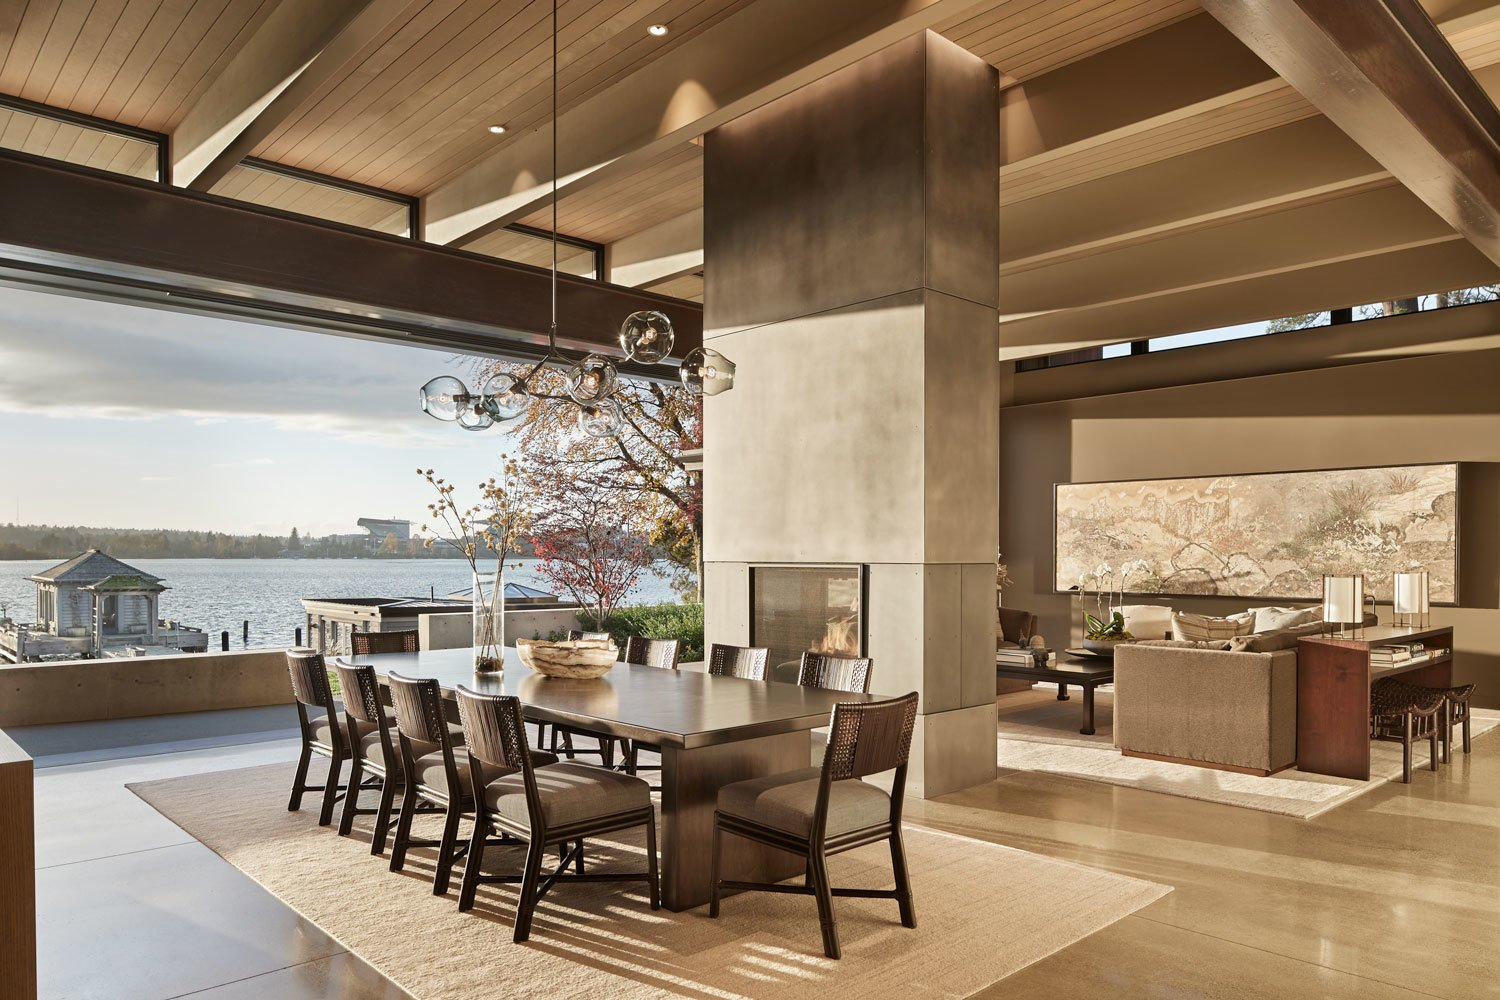 A neutral palette is used cohesively within the home